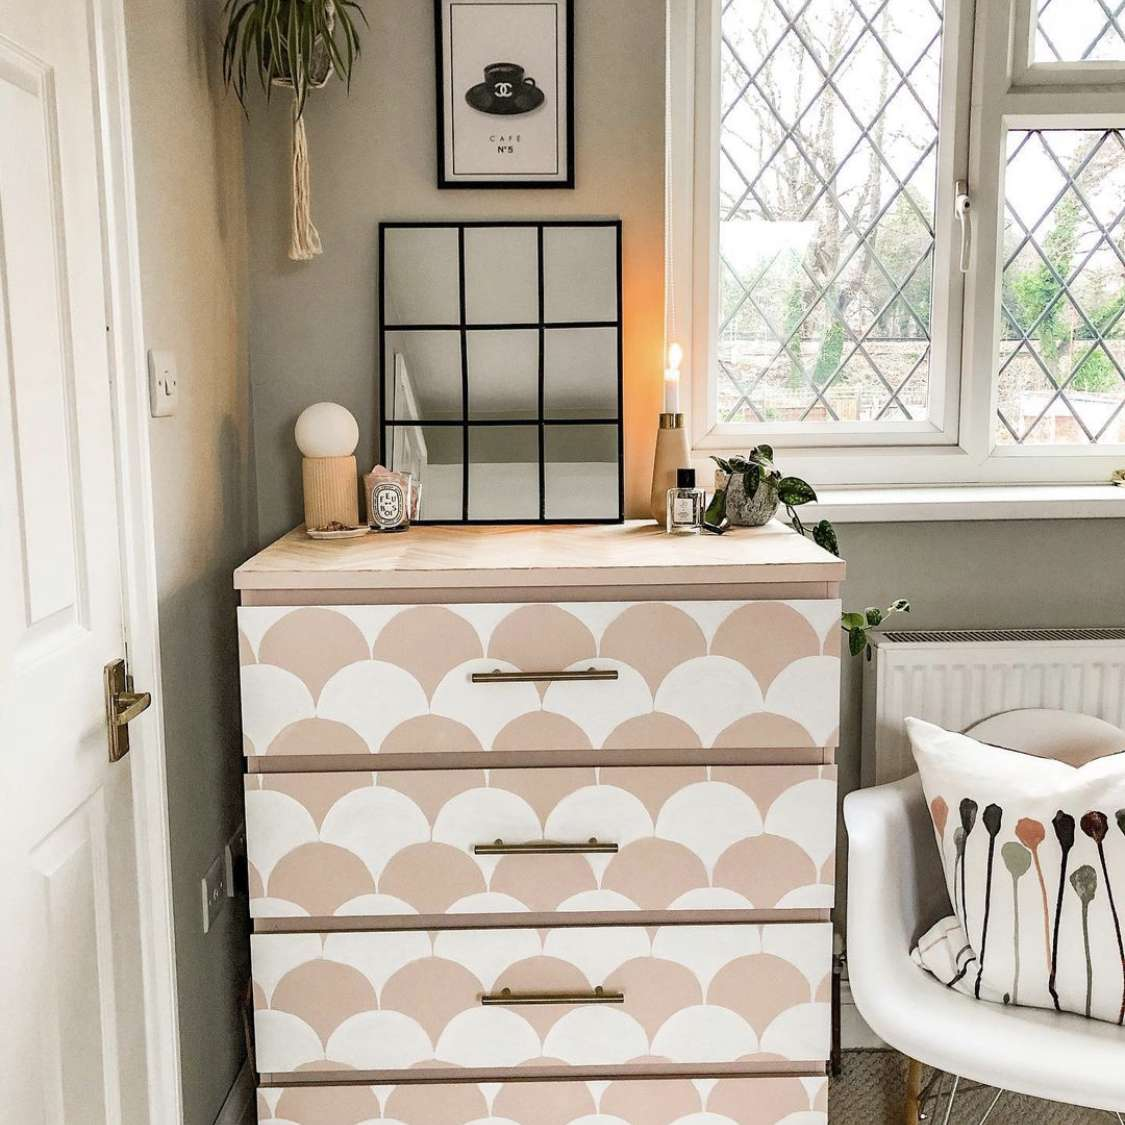 IKEA Malm dresser with pink and white scallop painted pattern